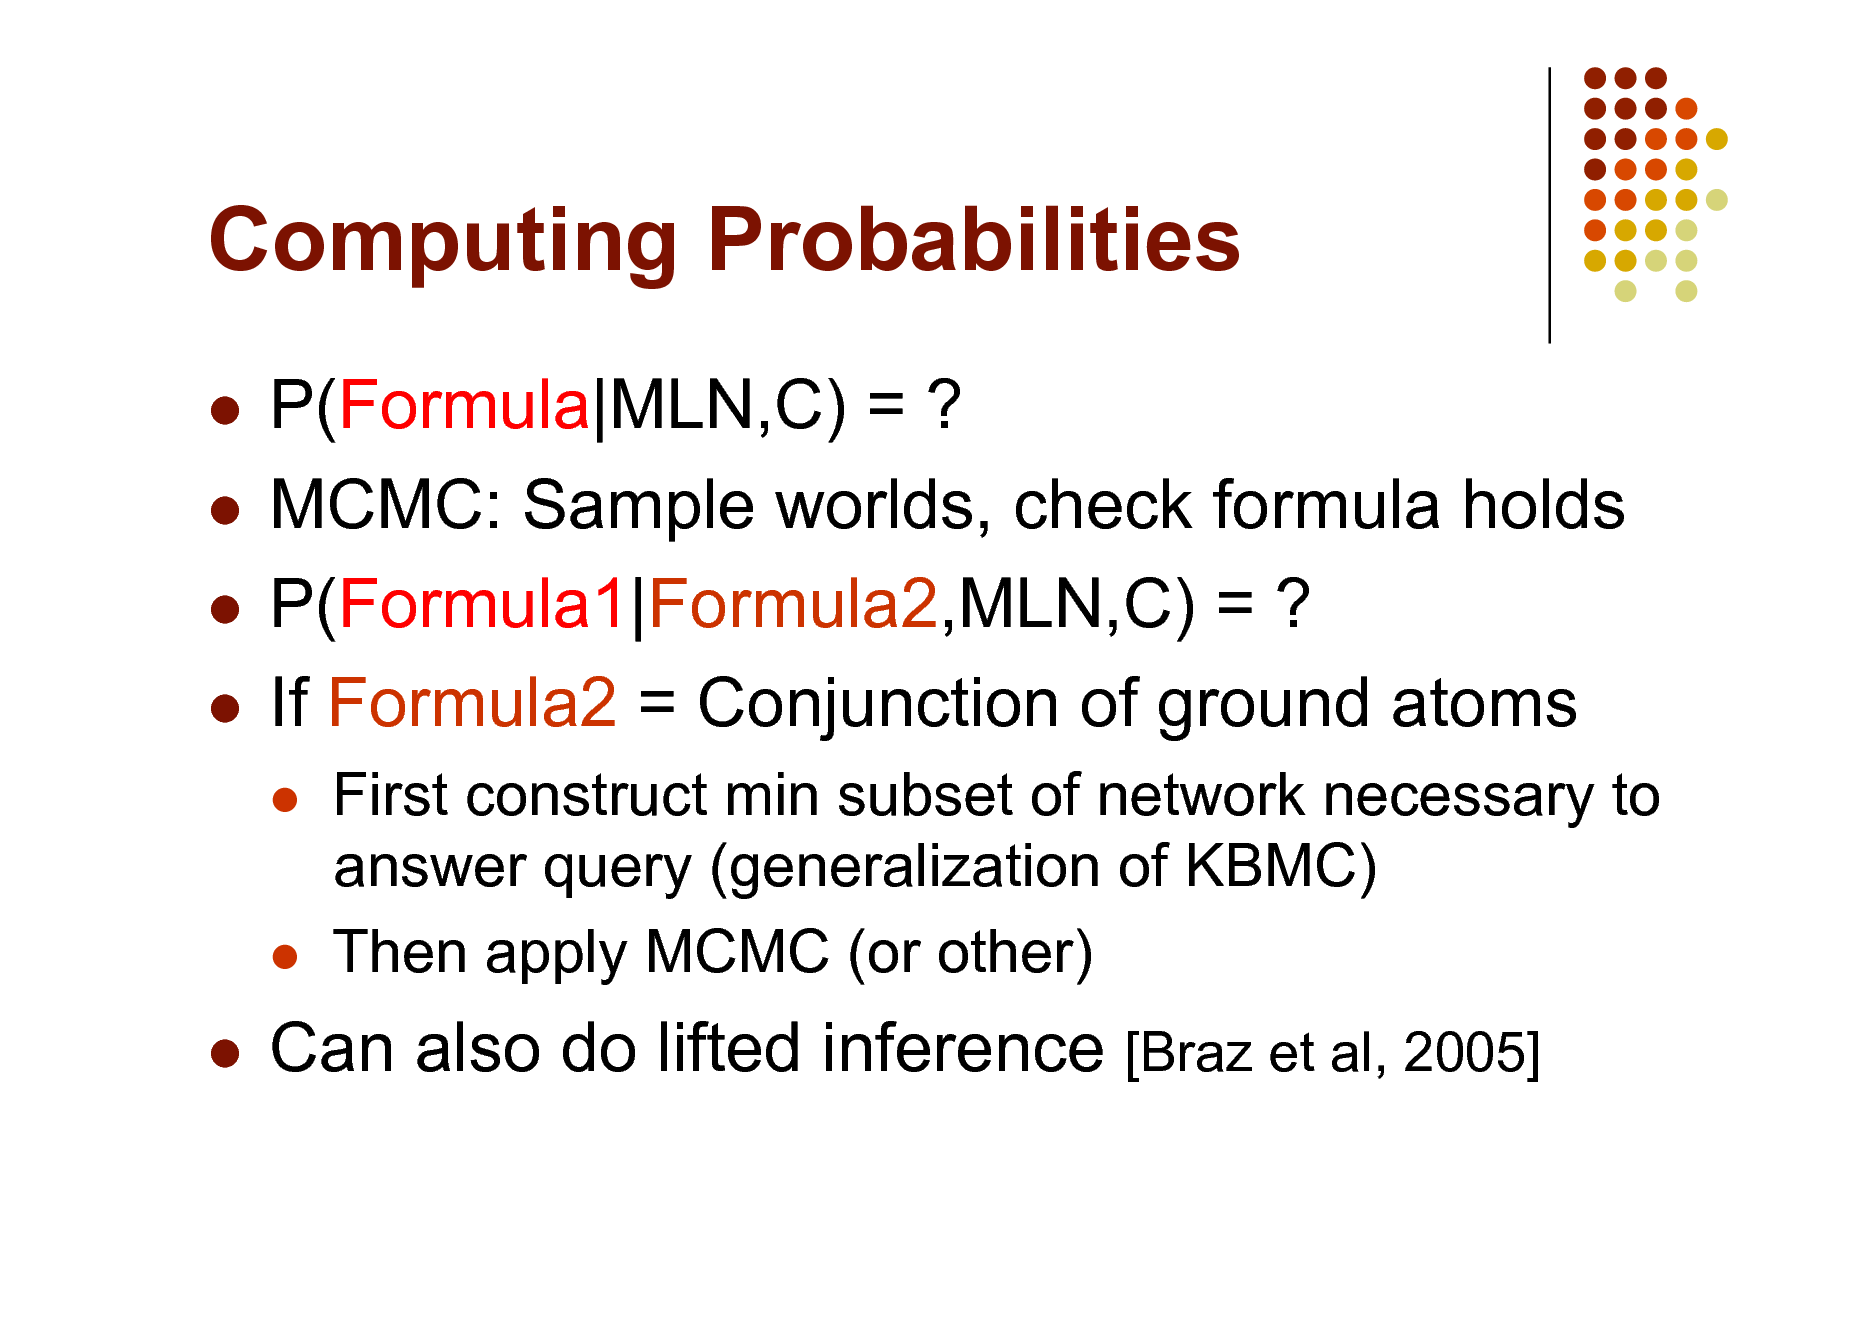 Slide: Computing Probabilities P(Formula|MLN,C) = ?  MCMC: Sample worlds, check formula holds  P(Formula1|Formula2,MLN,C) = ?  If Formula2 = Conjunction of ground atoms      First construct min subset of network necessary to answer query (generalization of KBMC) Then apply MCMC (or other)    Can also do lifted inference [Braz et al, 2005]